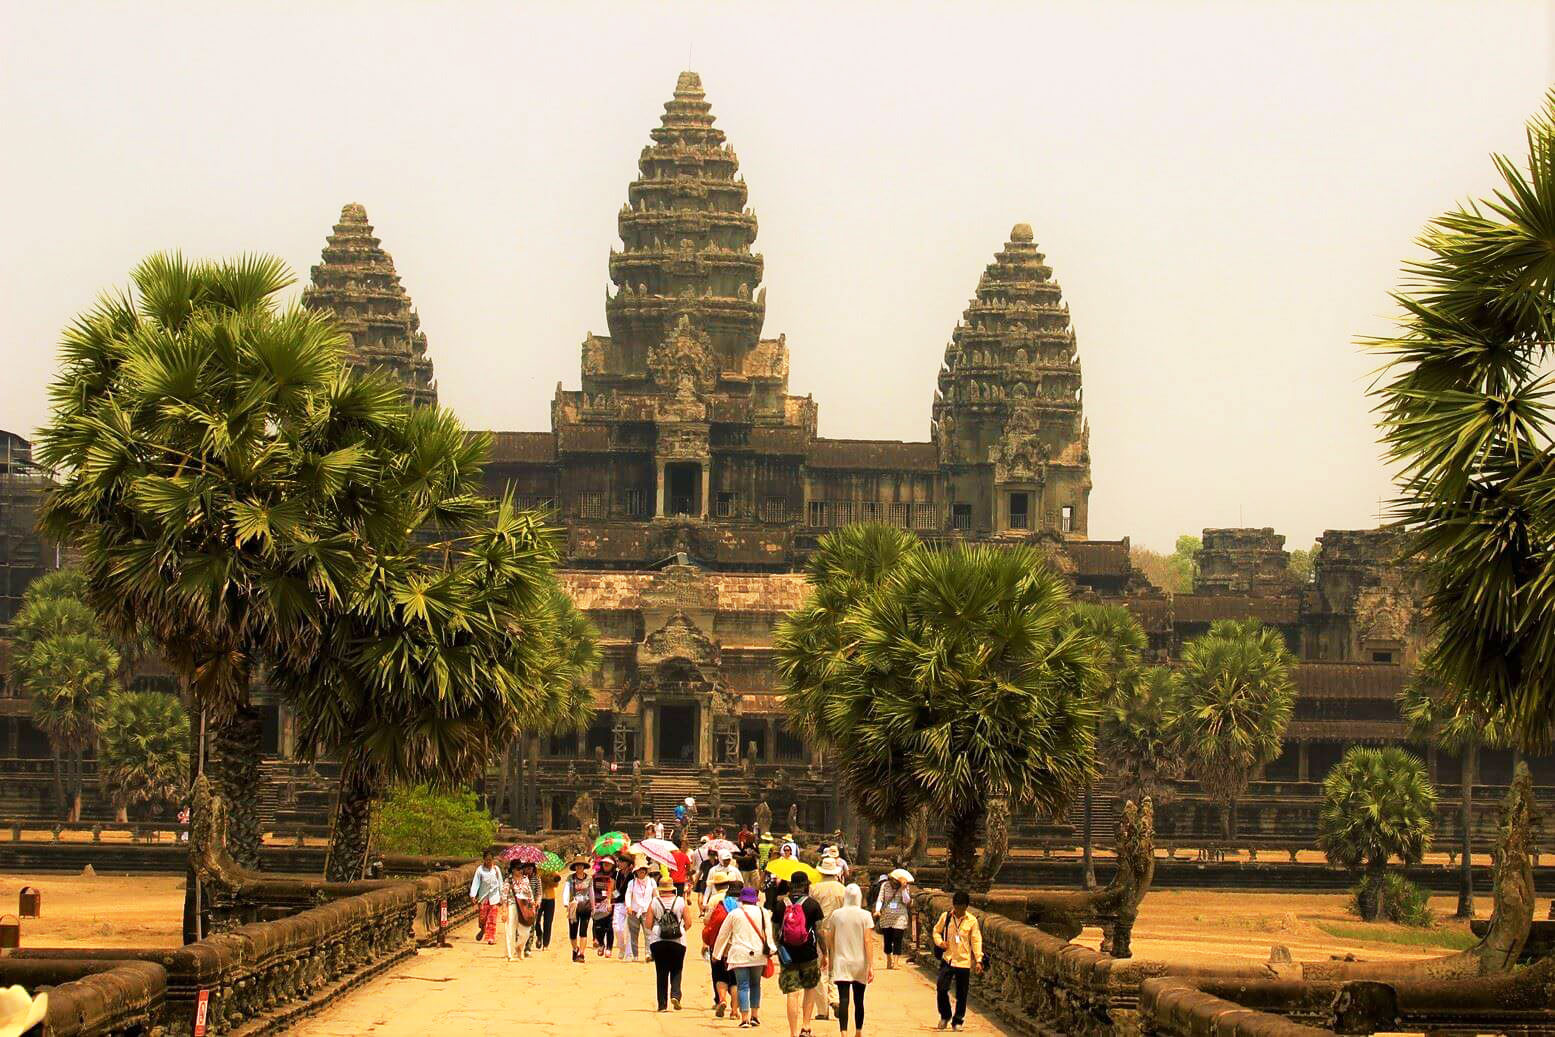 6-Day Culture Tour in Cambodia (06 Days; # 267)